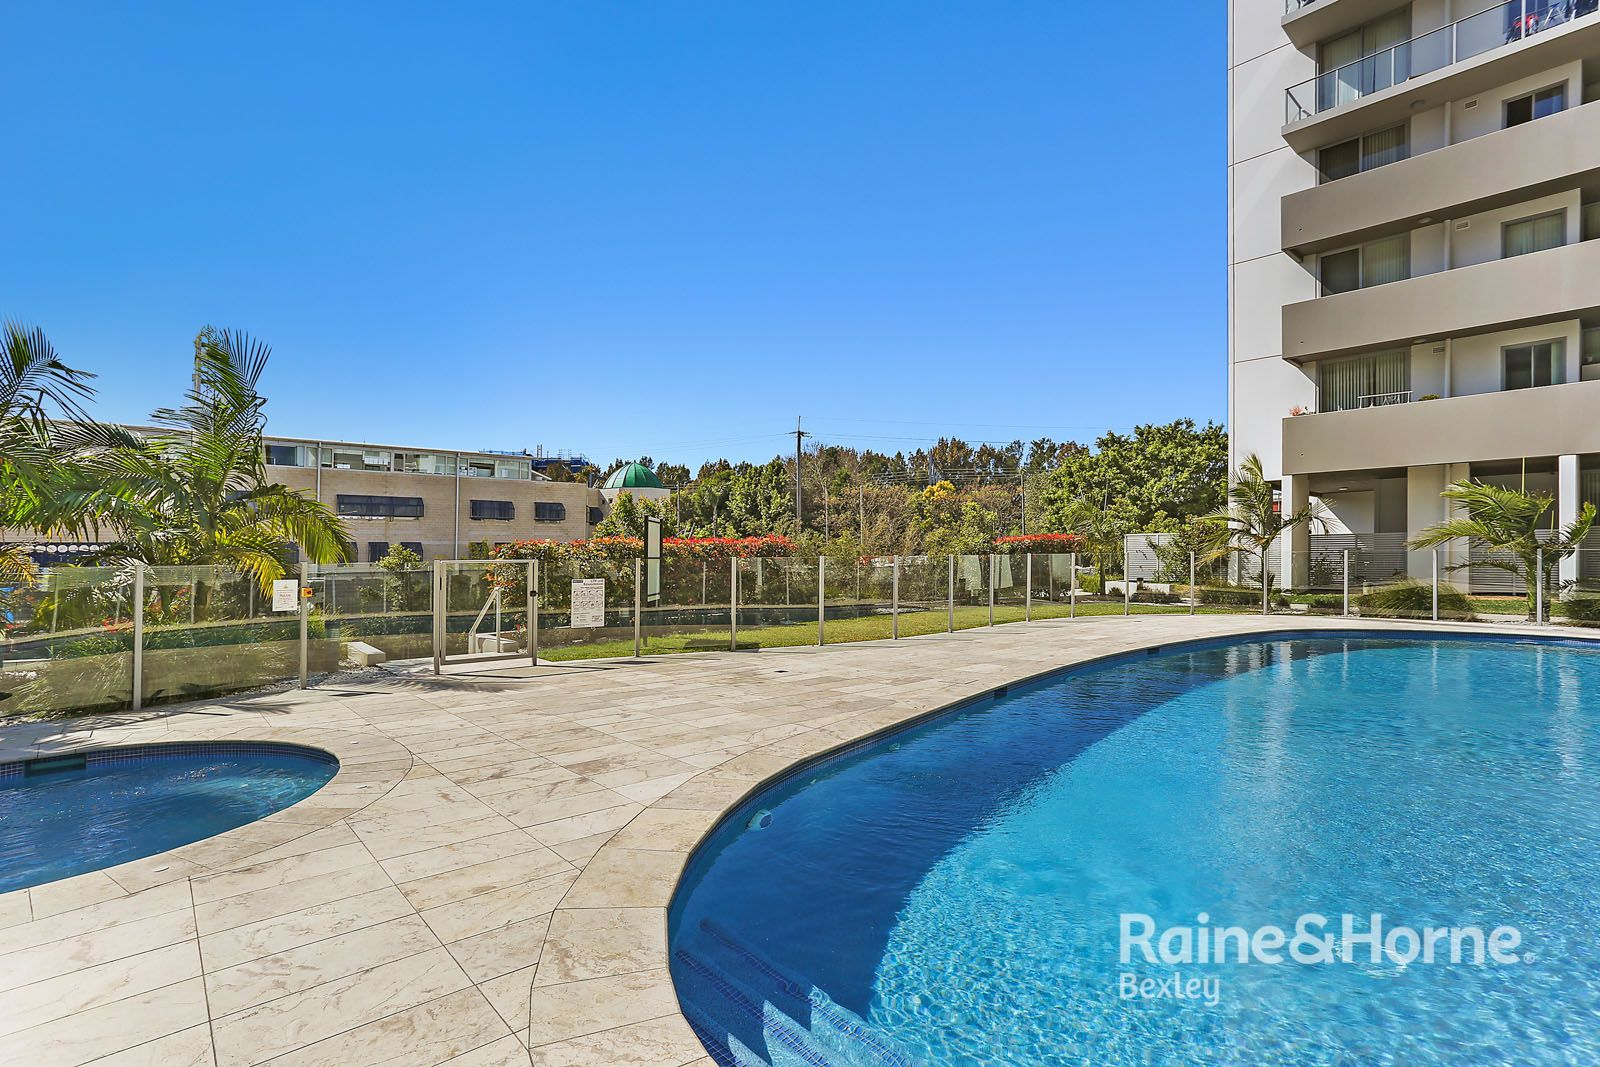 H506/9-11 Wollongong Road, Arncliffe NSW 2205, Image 0